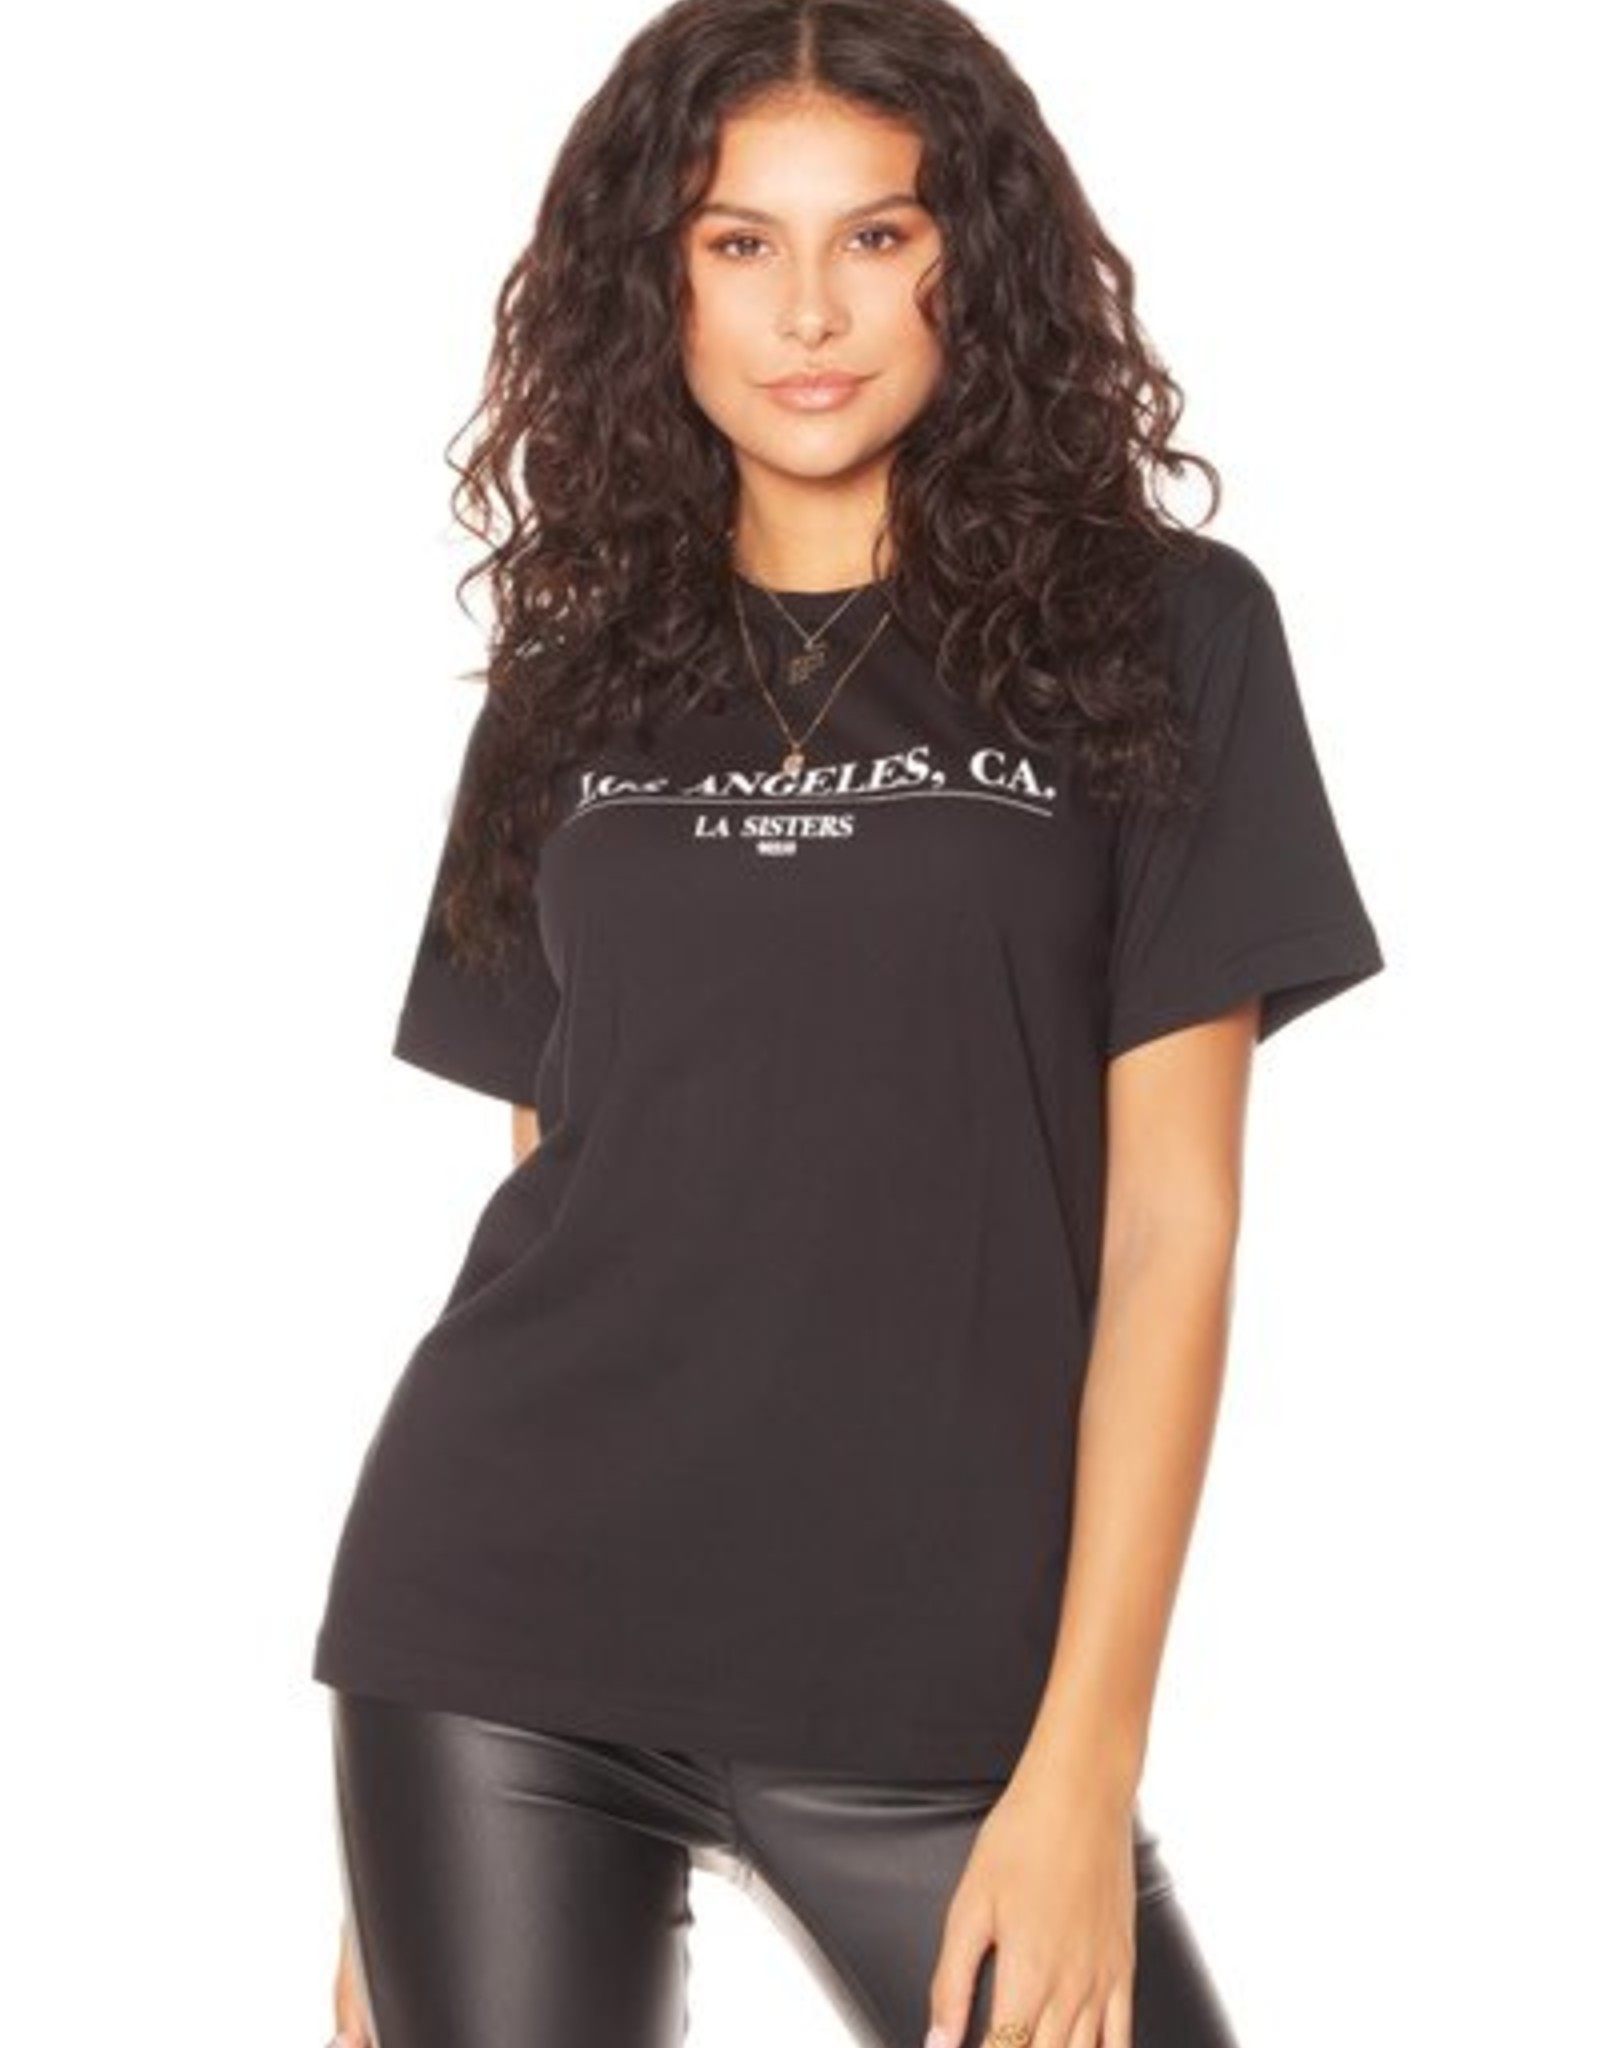 LA Sisters Los Angeles T-Shirt